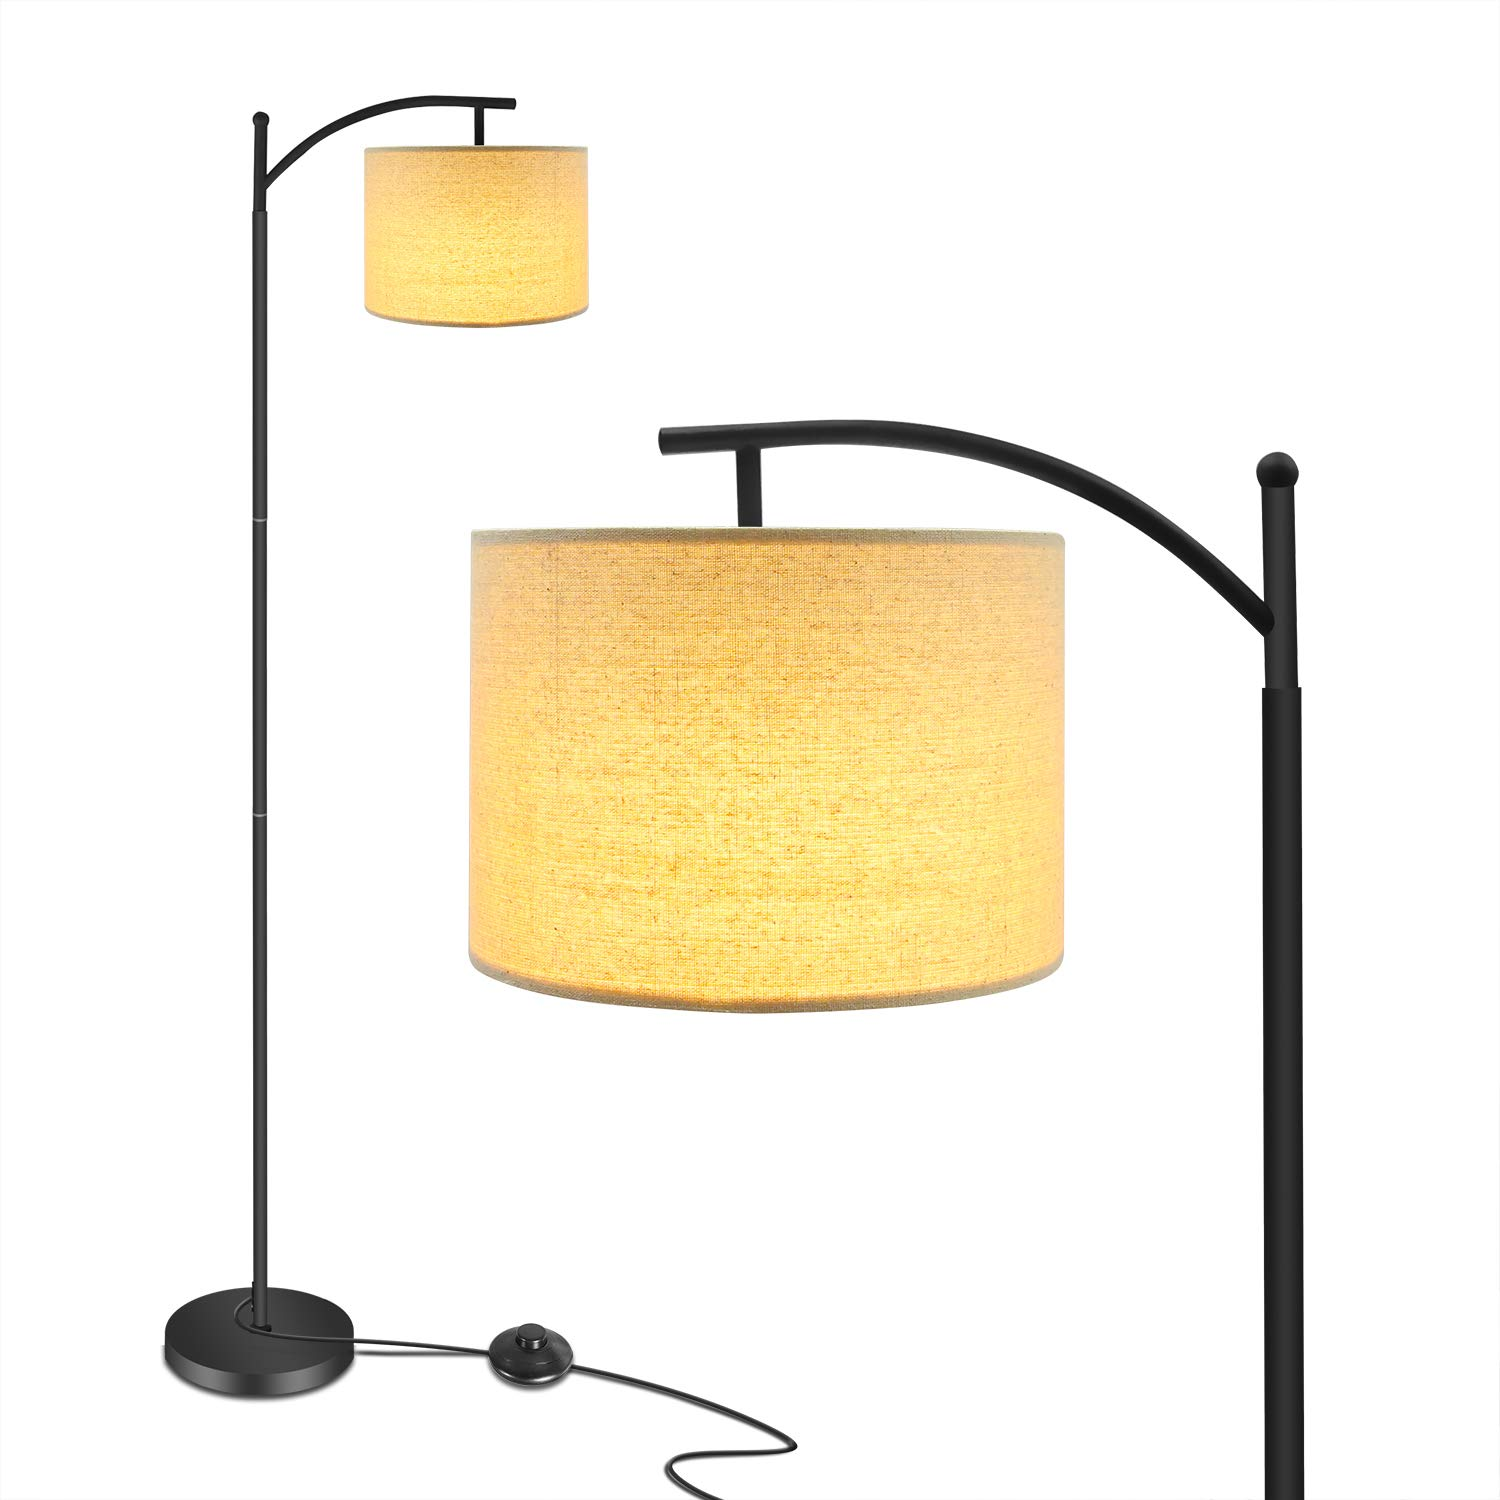 Floor Lamp, Ambimall Modern LED Floor Lamp for Living Room Standing Arc Pole Light with Hanging Lamp Shade Minimalist Bedside Floor Lamp for Bedroom (Black)